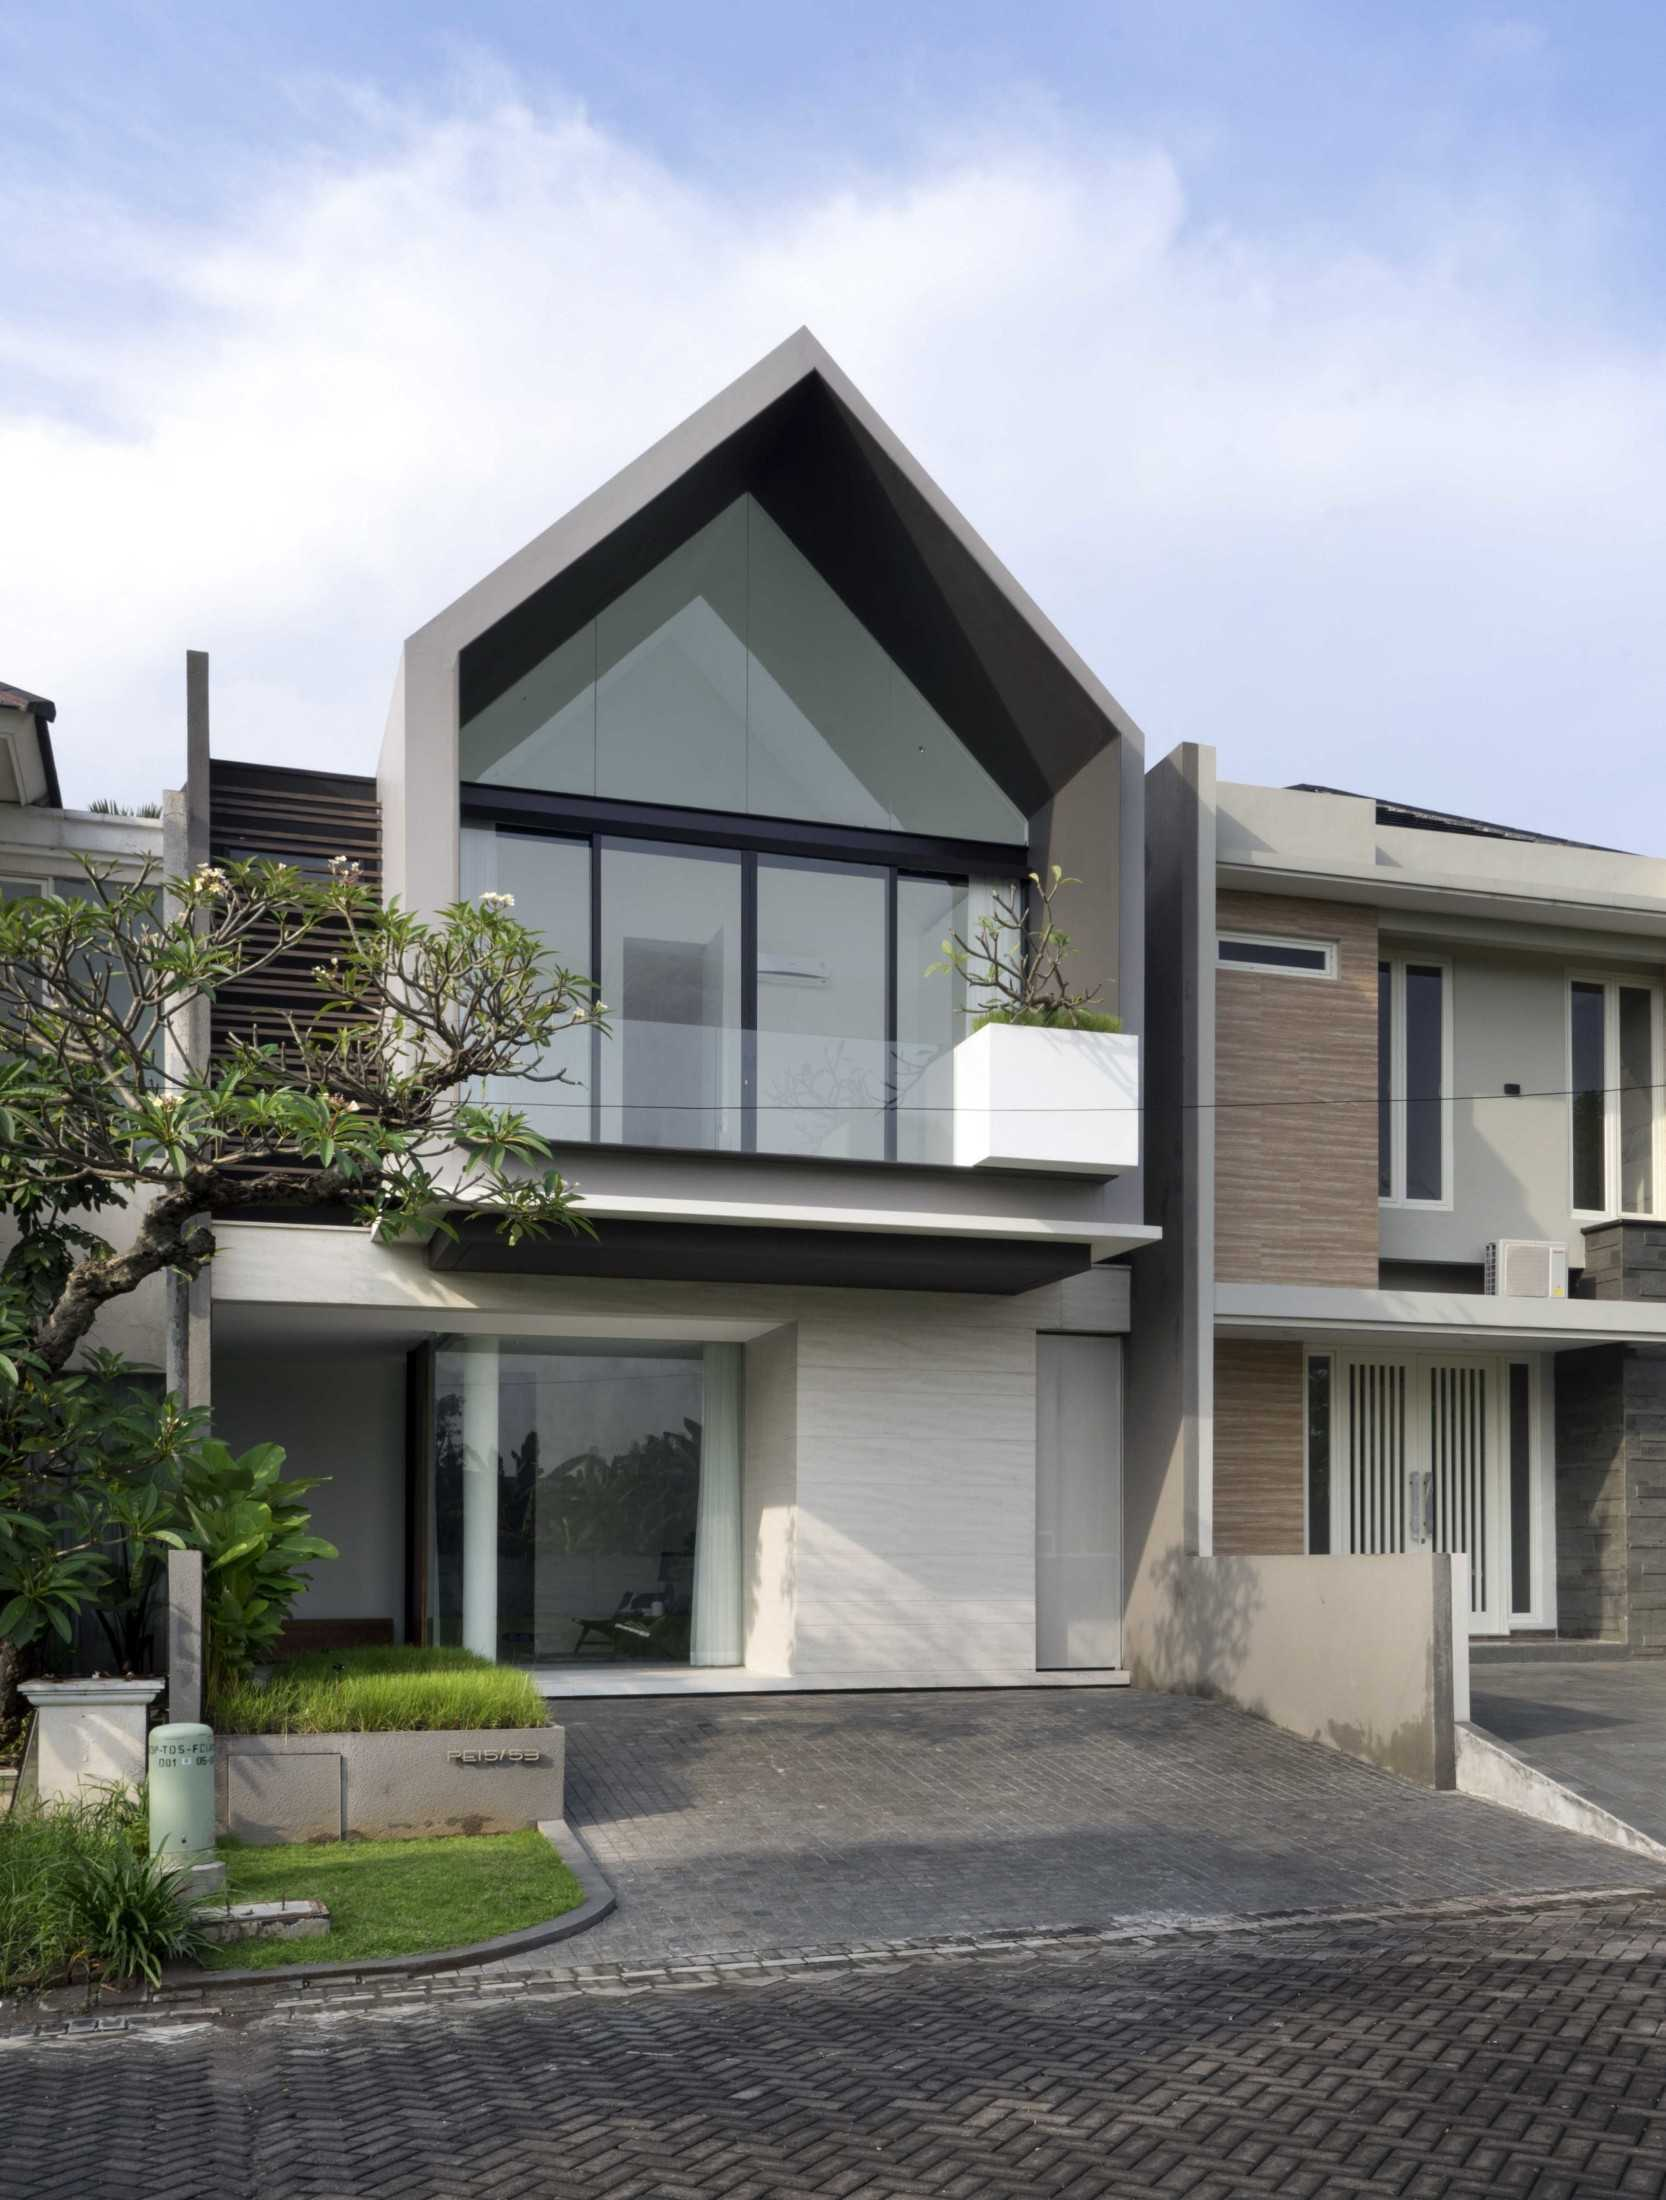 Simple Projects Architecture 'hhh' House Surabaya, Kota Sby, Jawa Timur, Indonesia  Simple-Projects-Architecture-Hhh-House  75048